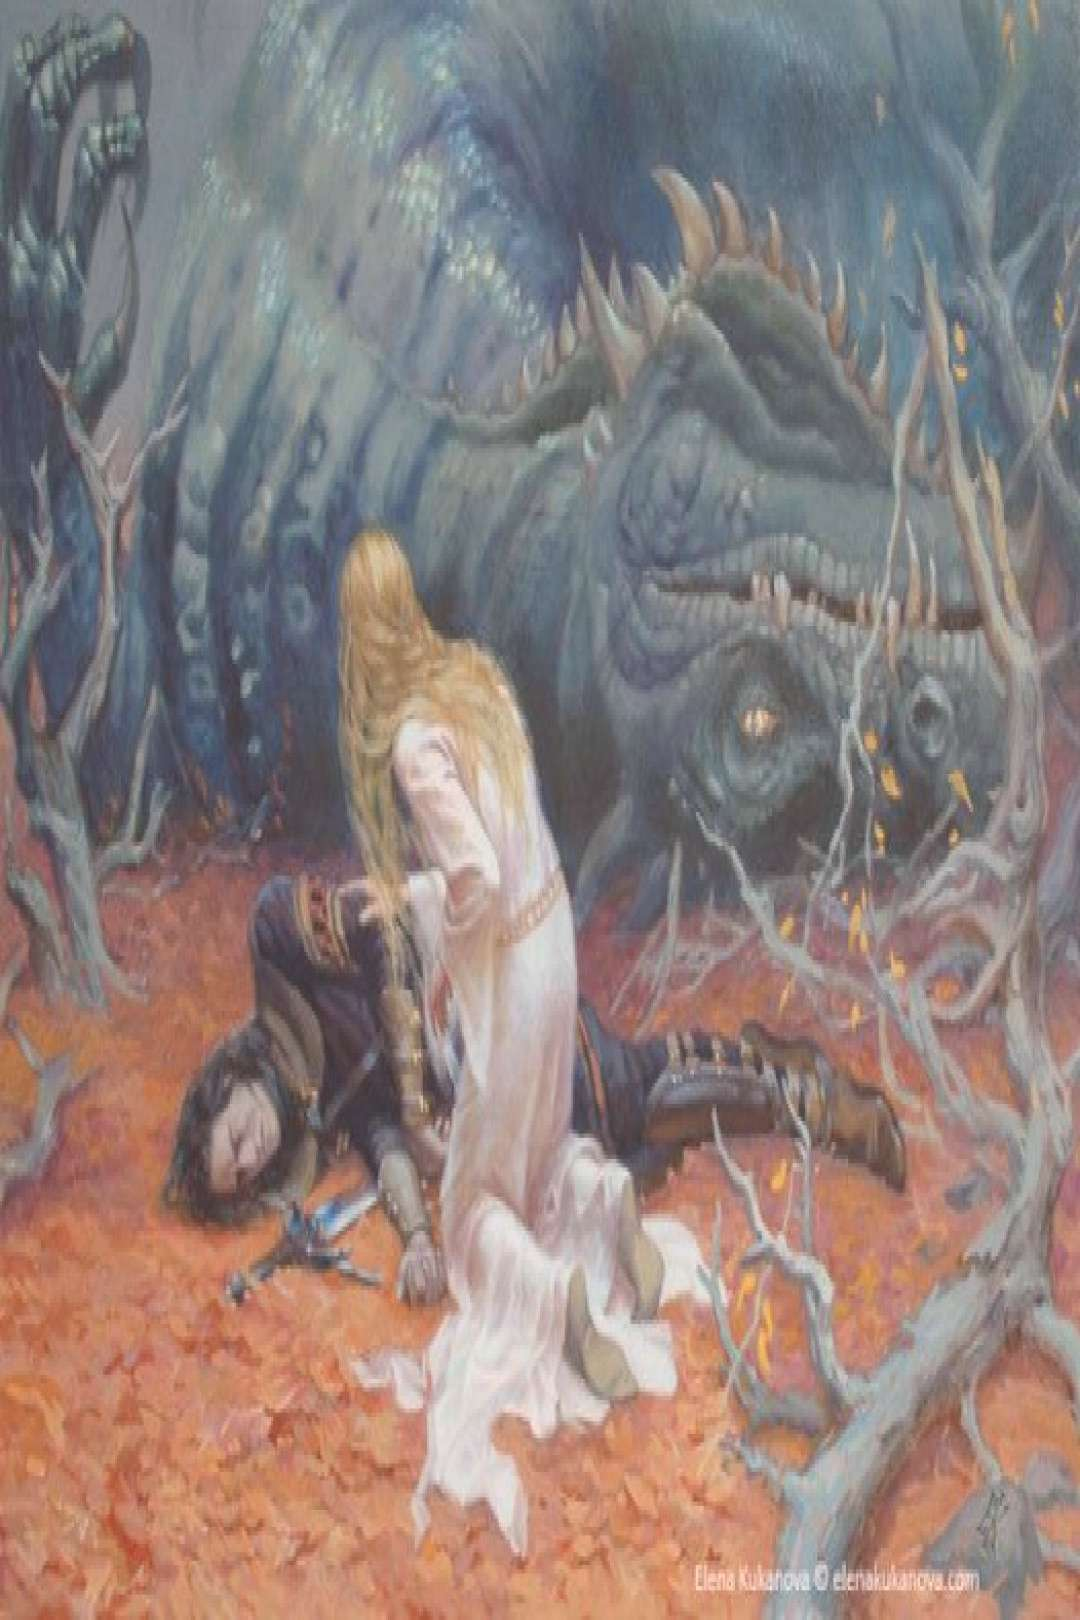 The death of Glaurung Nienor comes to the place of the battle and try to wake up Turin